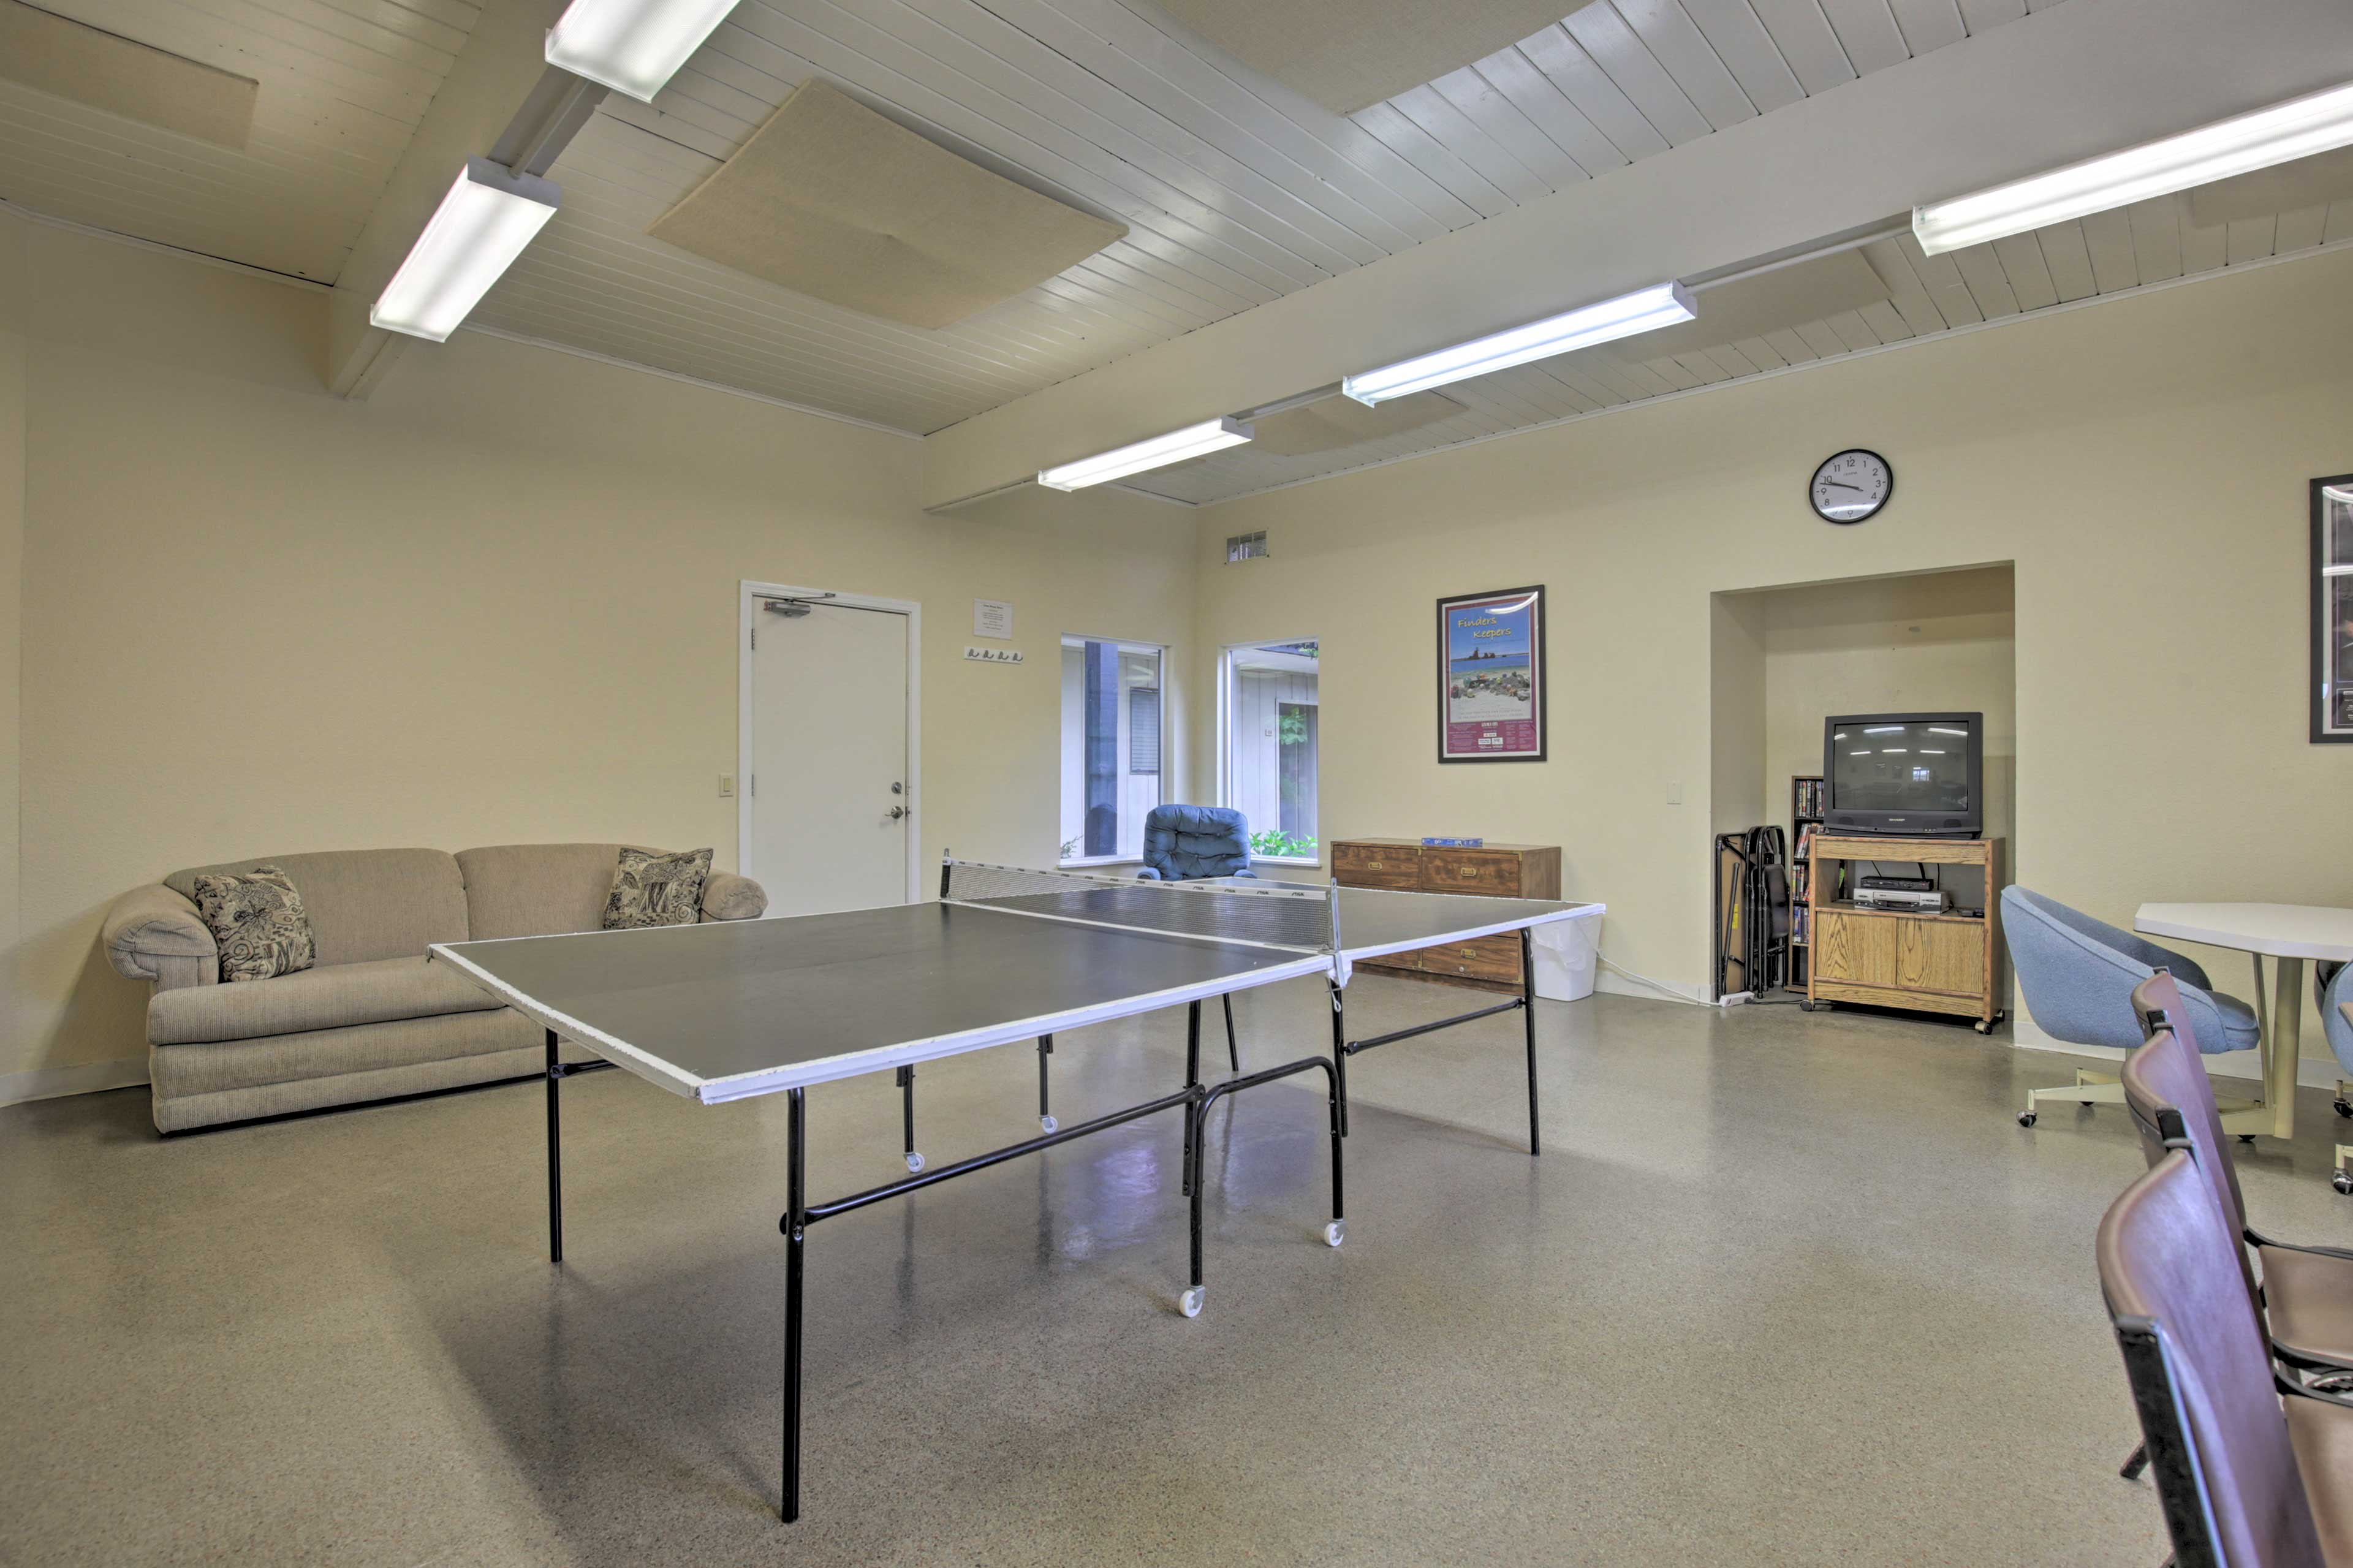 Play ping pong with friends old and new in the shared game room.